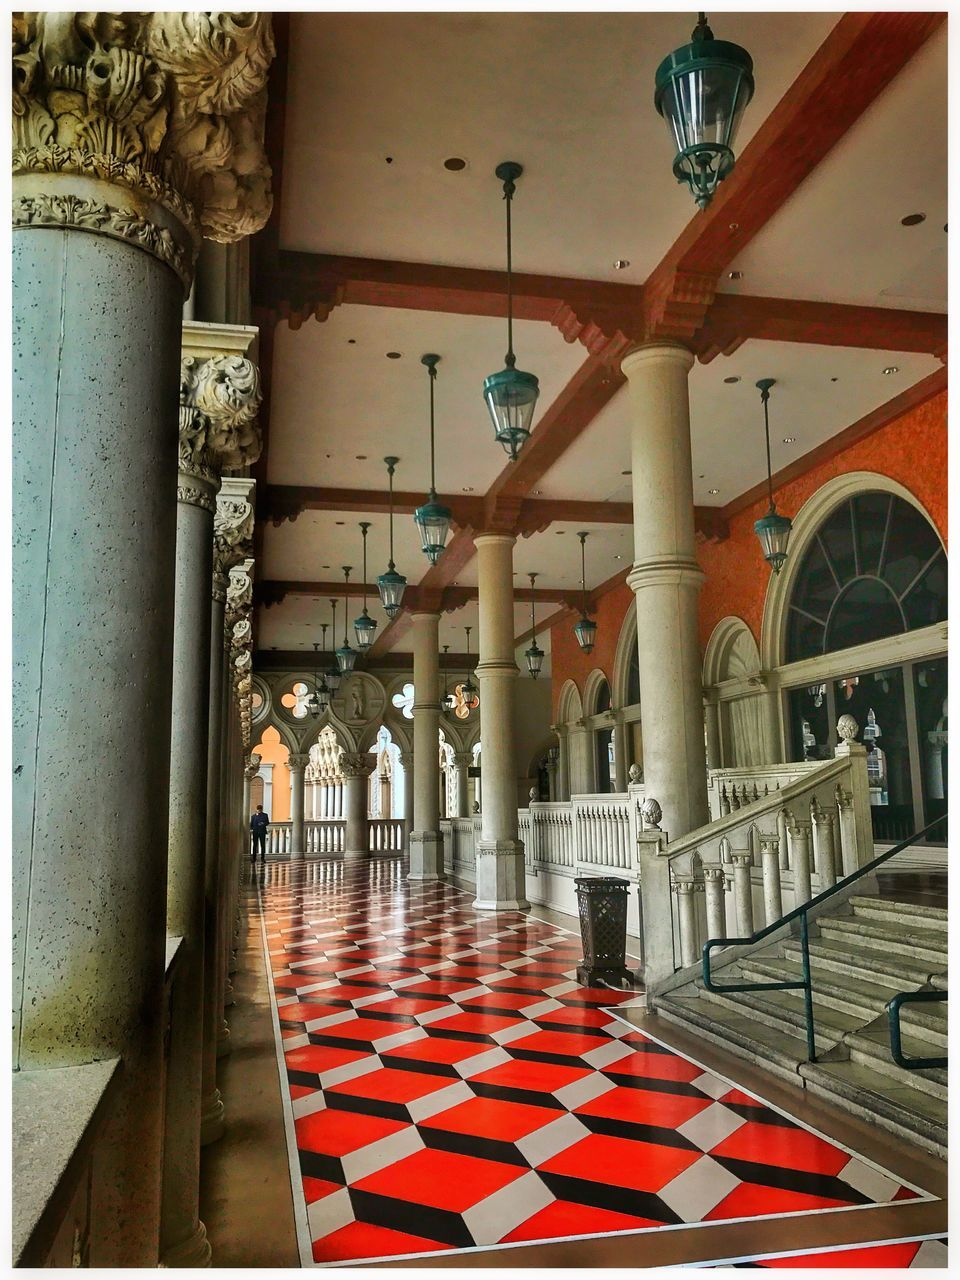 indoors, architectural column, corridor, no people, architecture, day